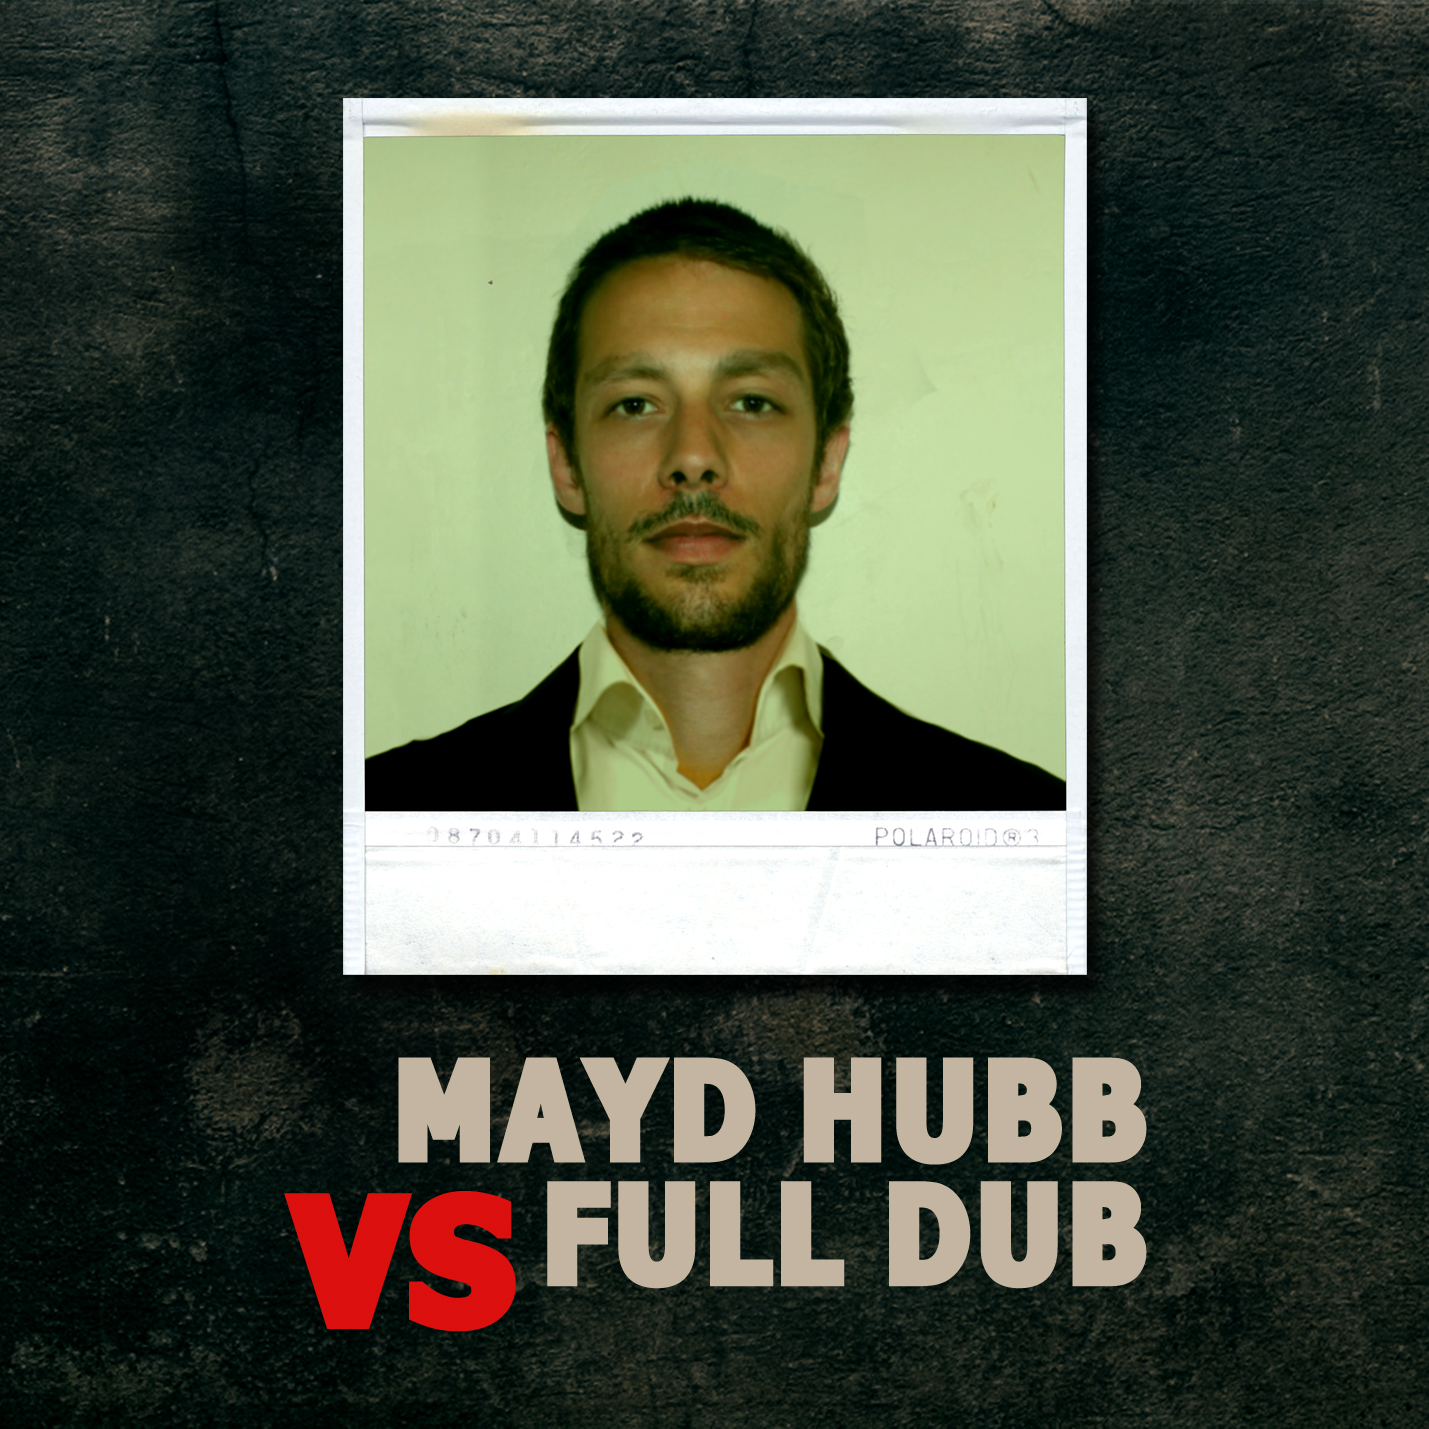 Mayd Hubb VS Full Dub